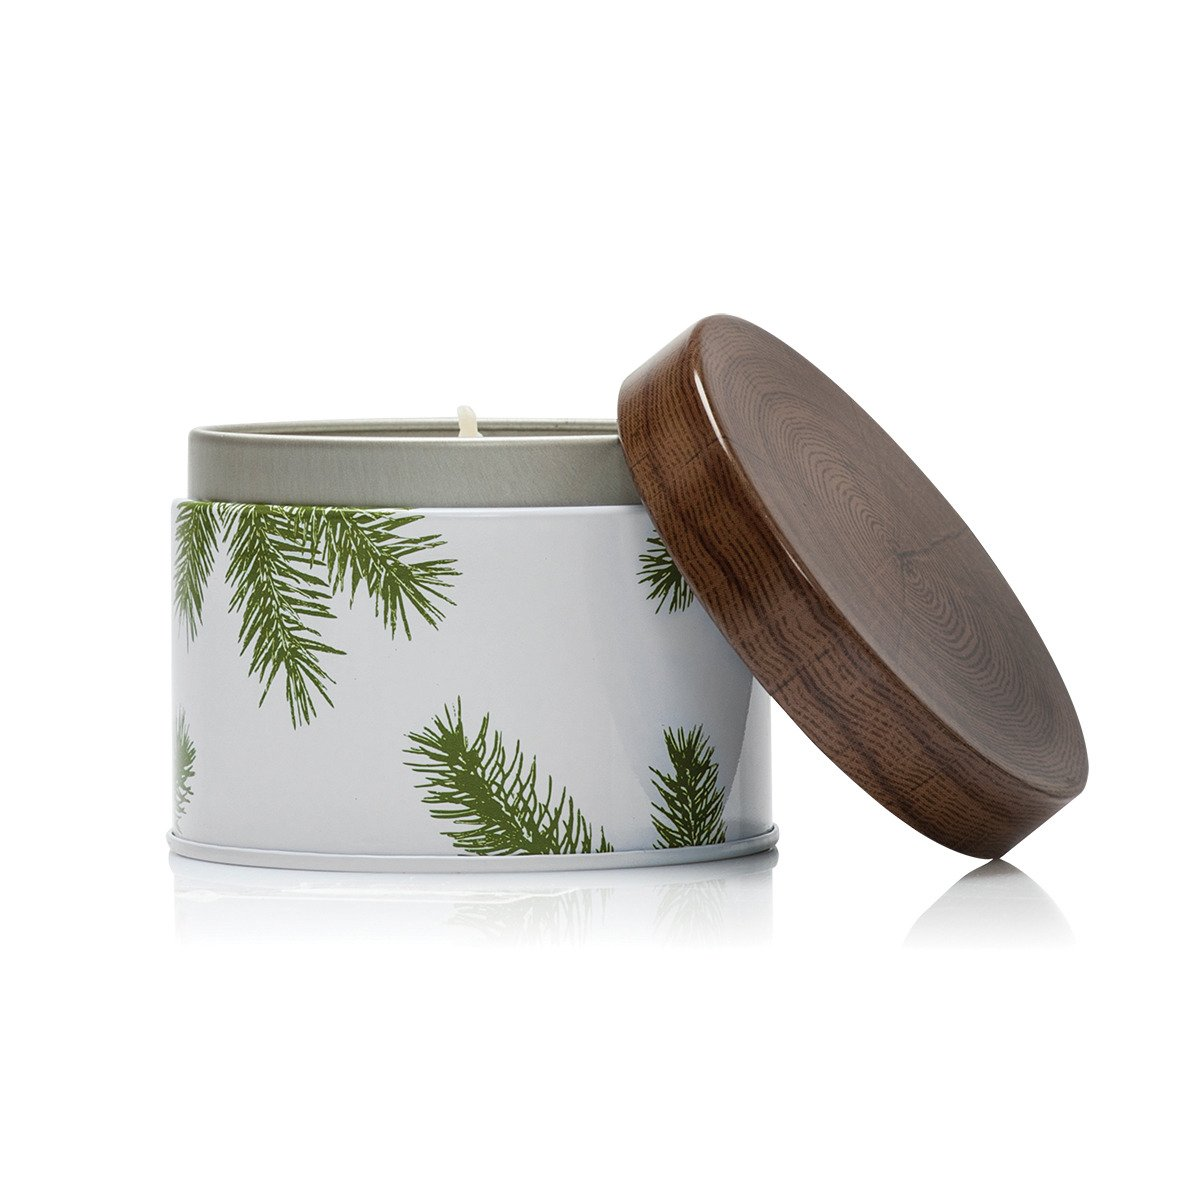 Thymes - Frasier Fir Pine Needle Decorative Tin Candle, 40 Hour Burn Time - 6.5 Ounces by Thymes